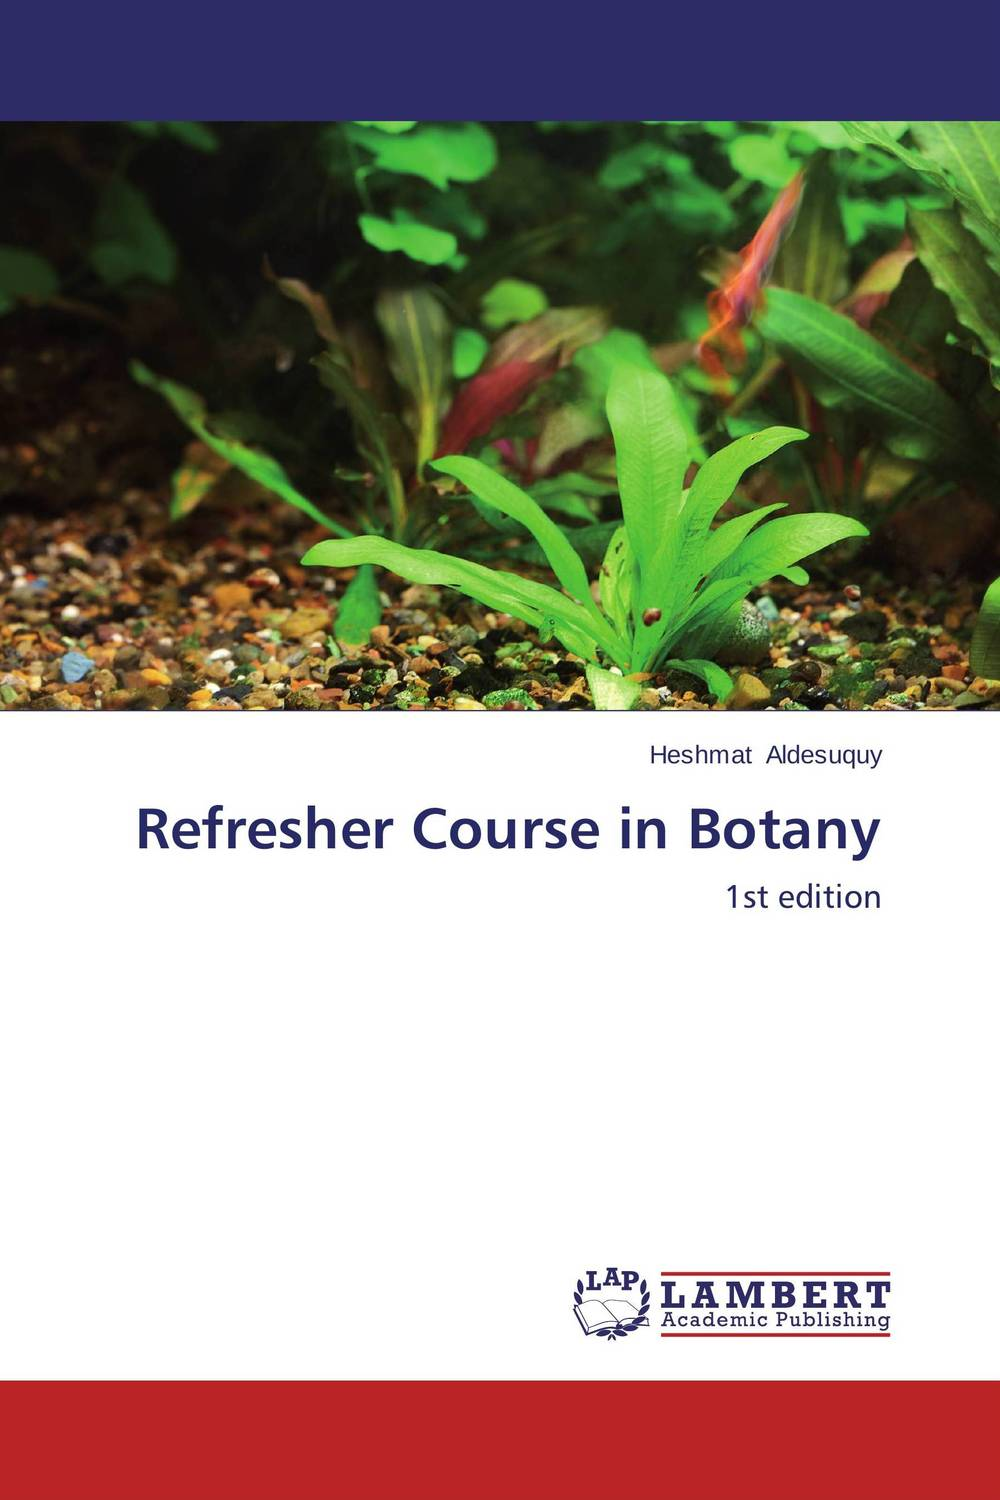 Refresher Course in Botany